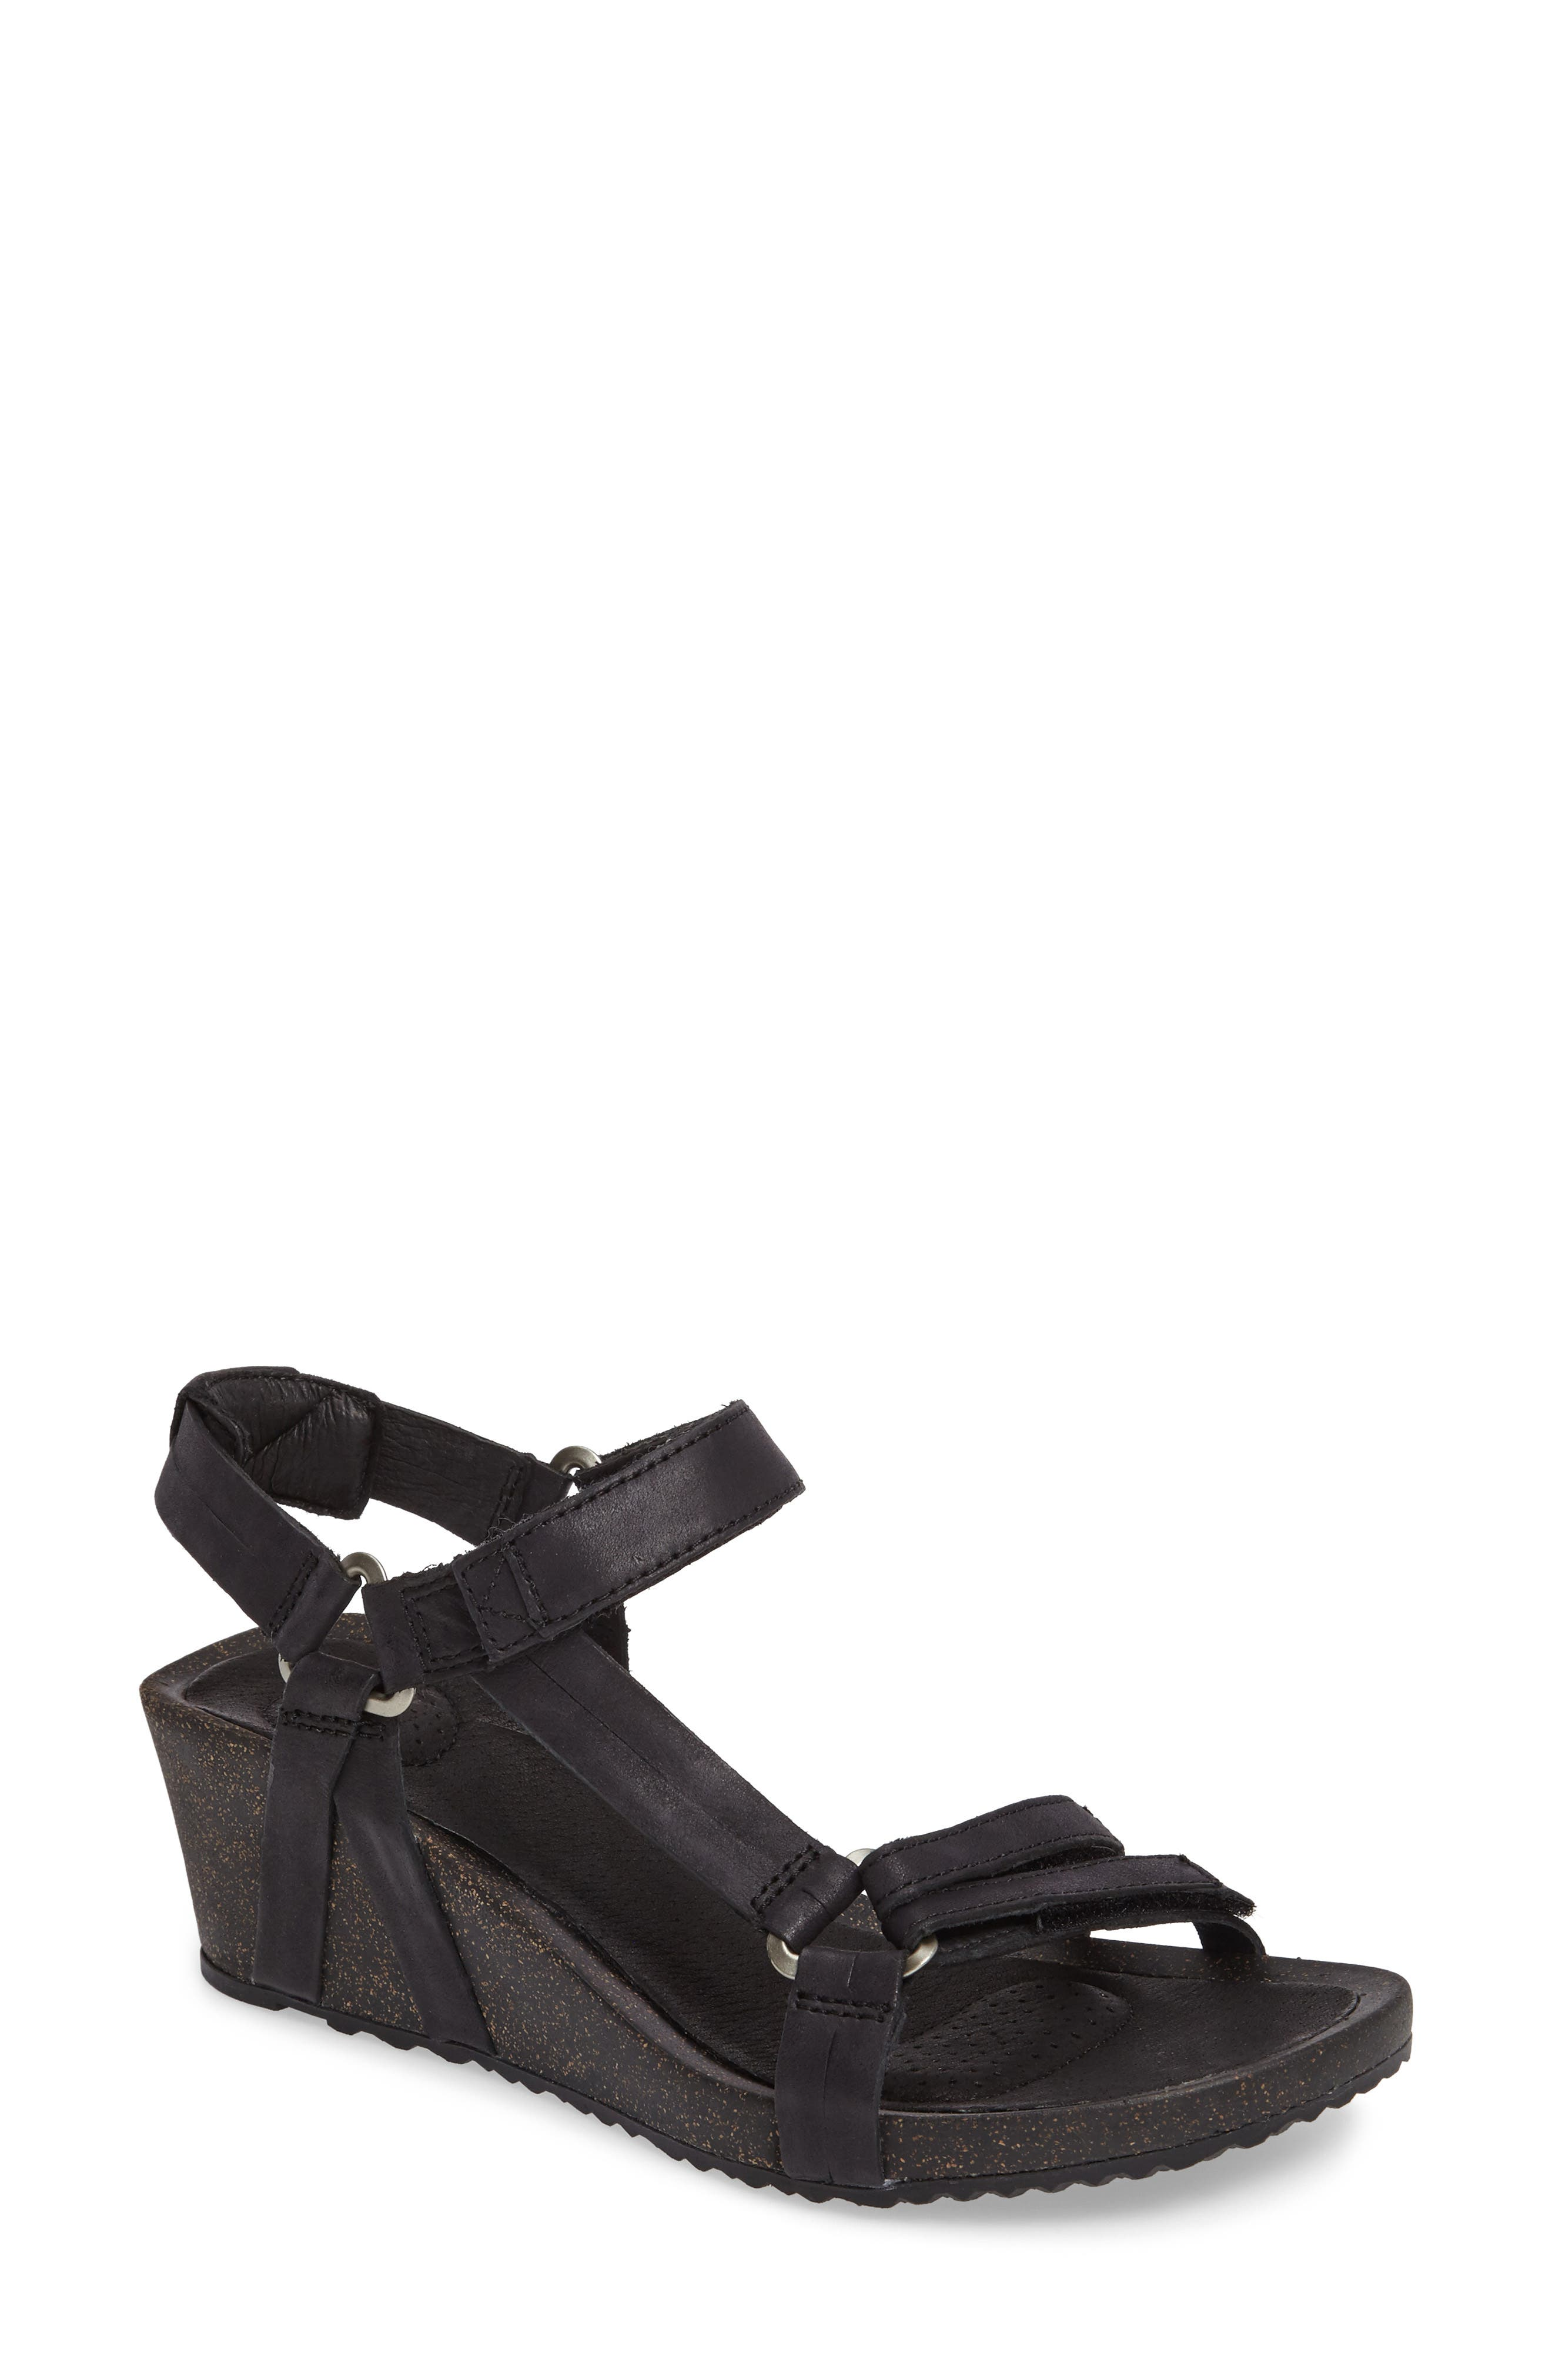 Ysidro Wedge Sandal,                             Main thumbnail 1, color,                             002